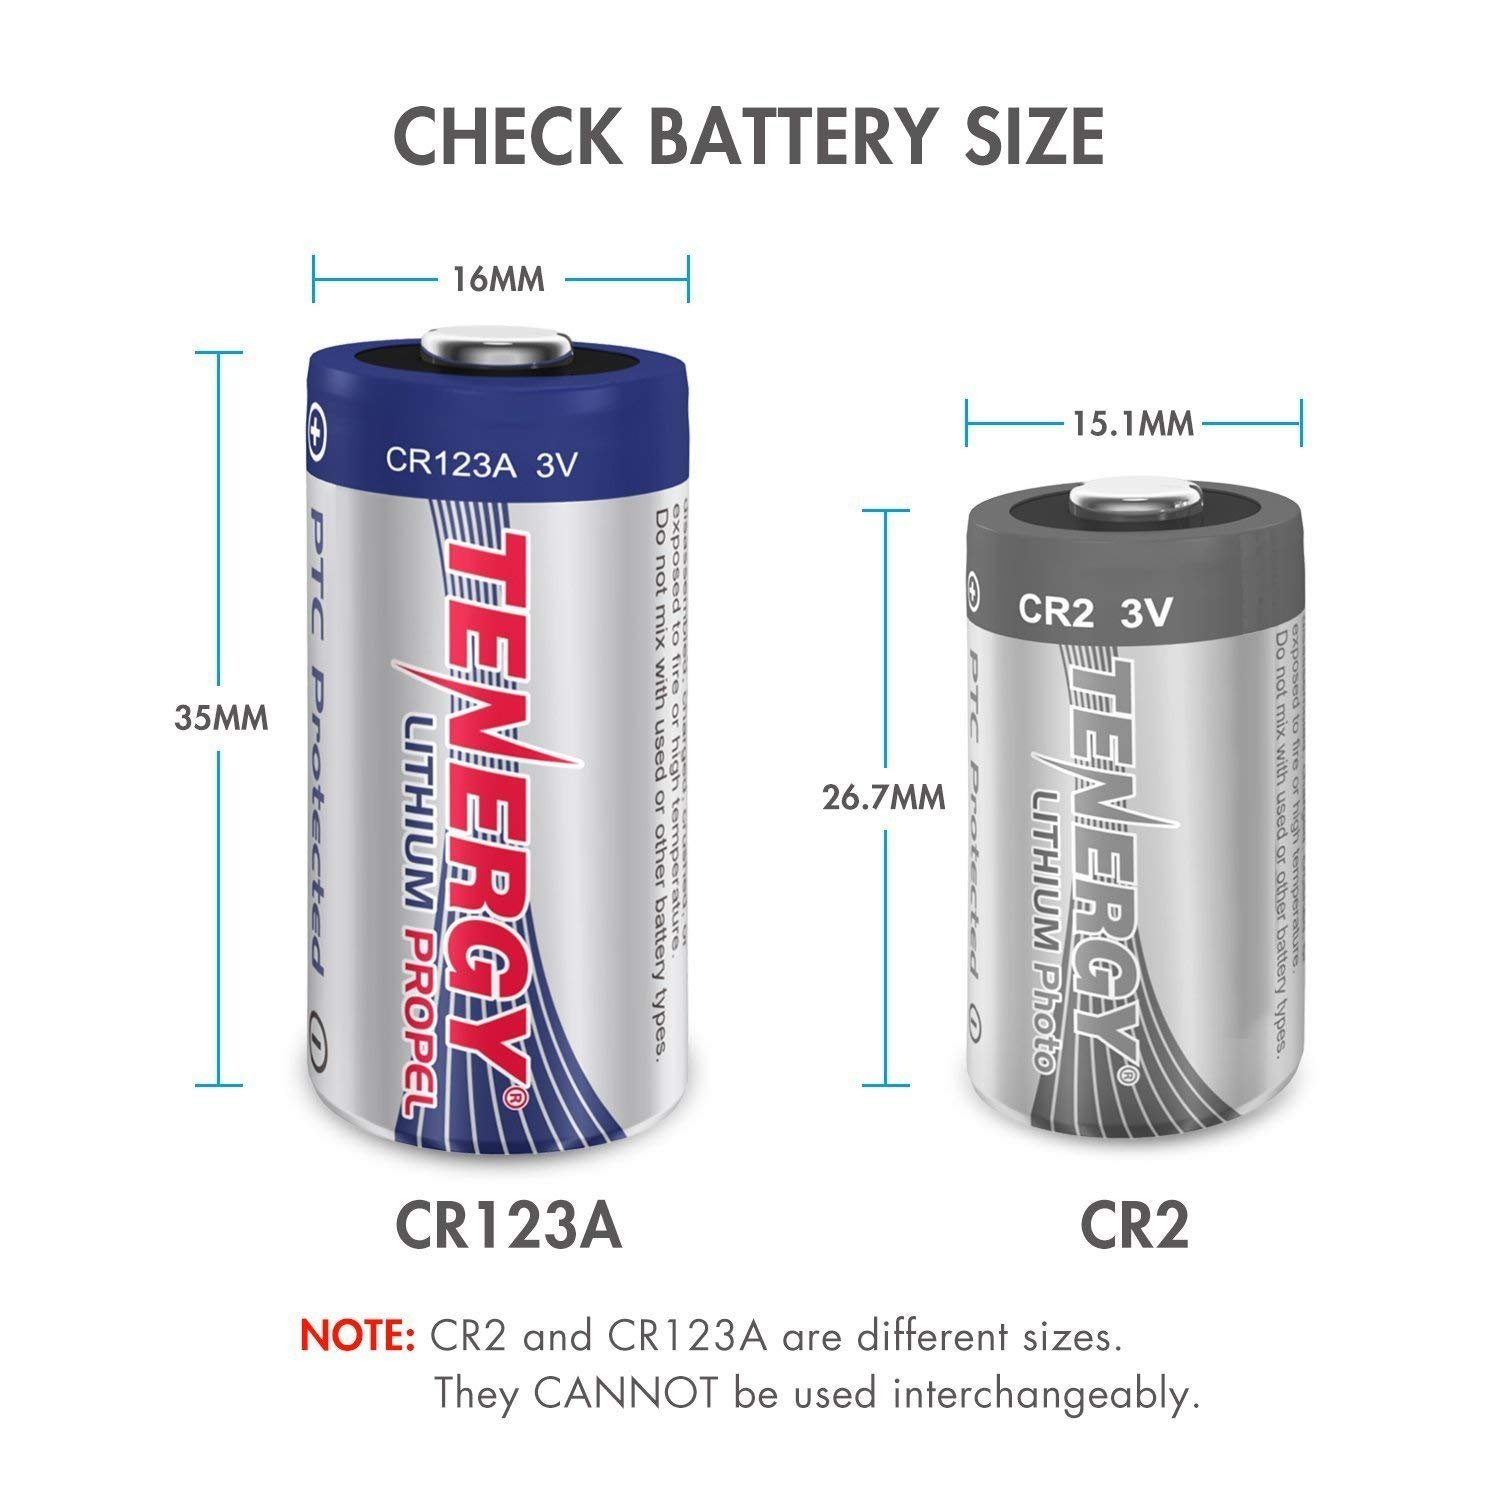 Tenergy Propel 1500mAh 3V CR123A Lithium Battery, High Performance CR123A Cell Batteries PTC Protected for Cameras, Flashlight Replacement CR123A Batteries, 40-Pack by Tenergy (Image #2)